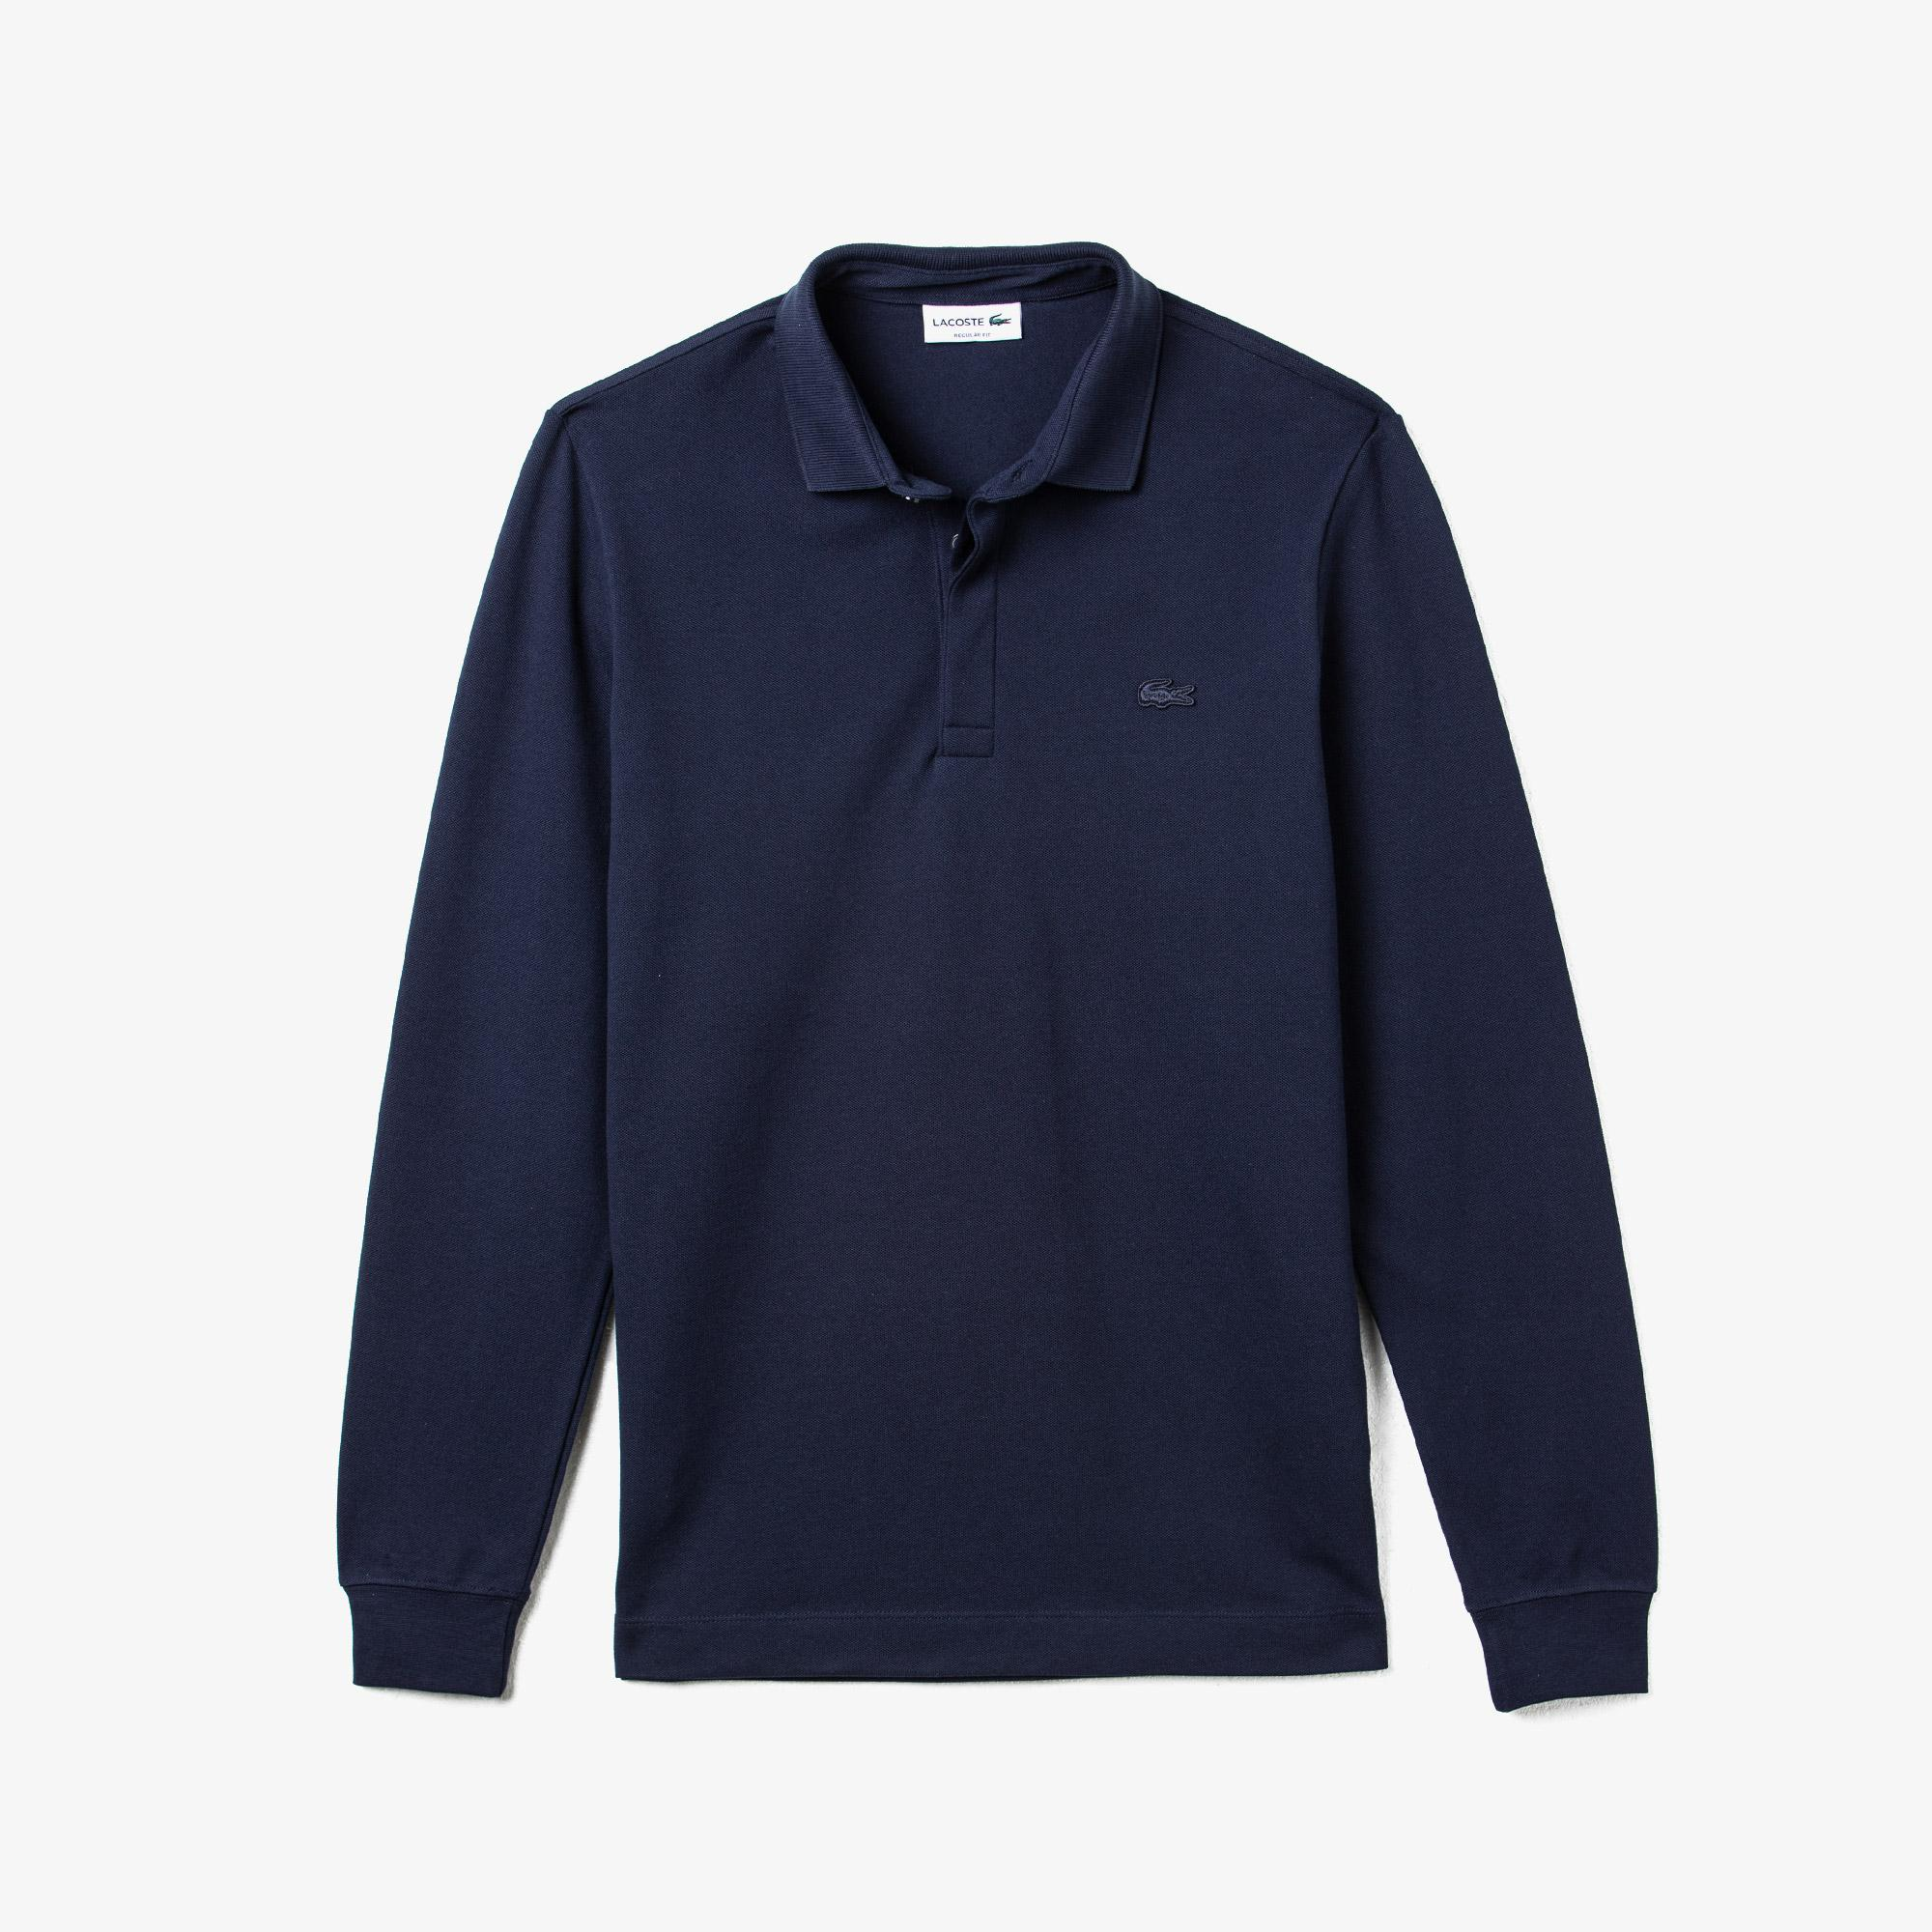 Lacoste Erkek Regular Fit Uzun Kollu Lacivert Paris Polo